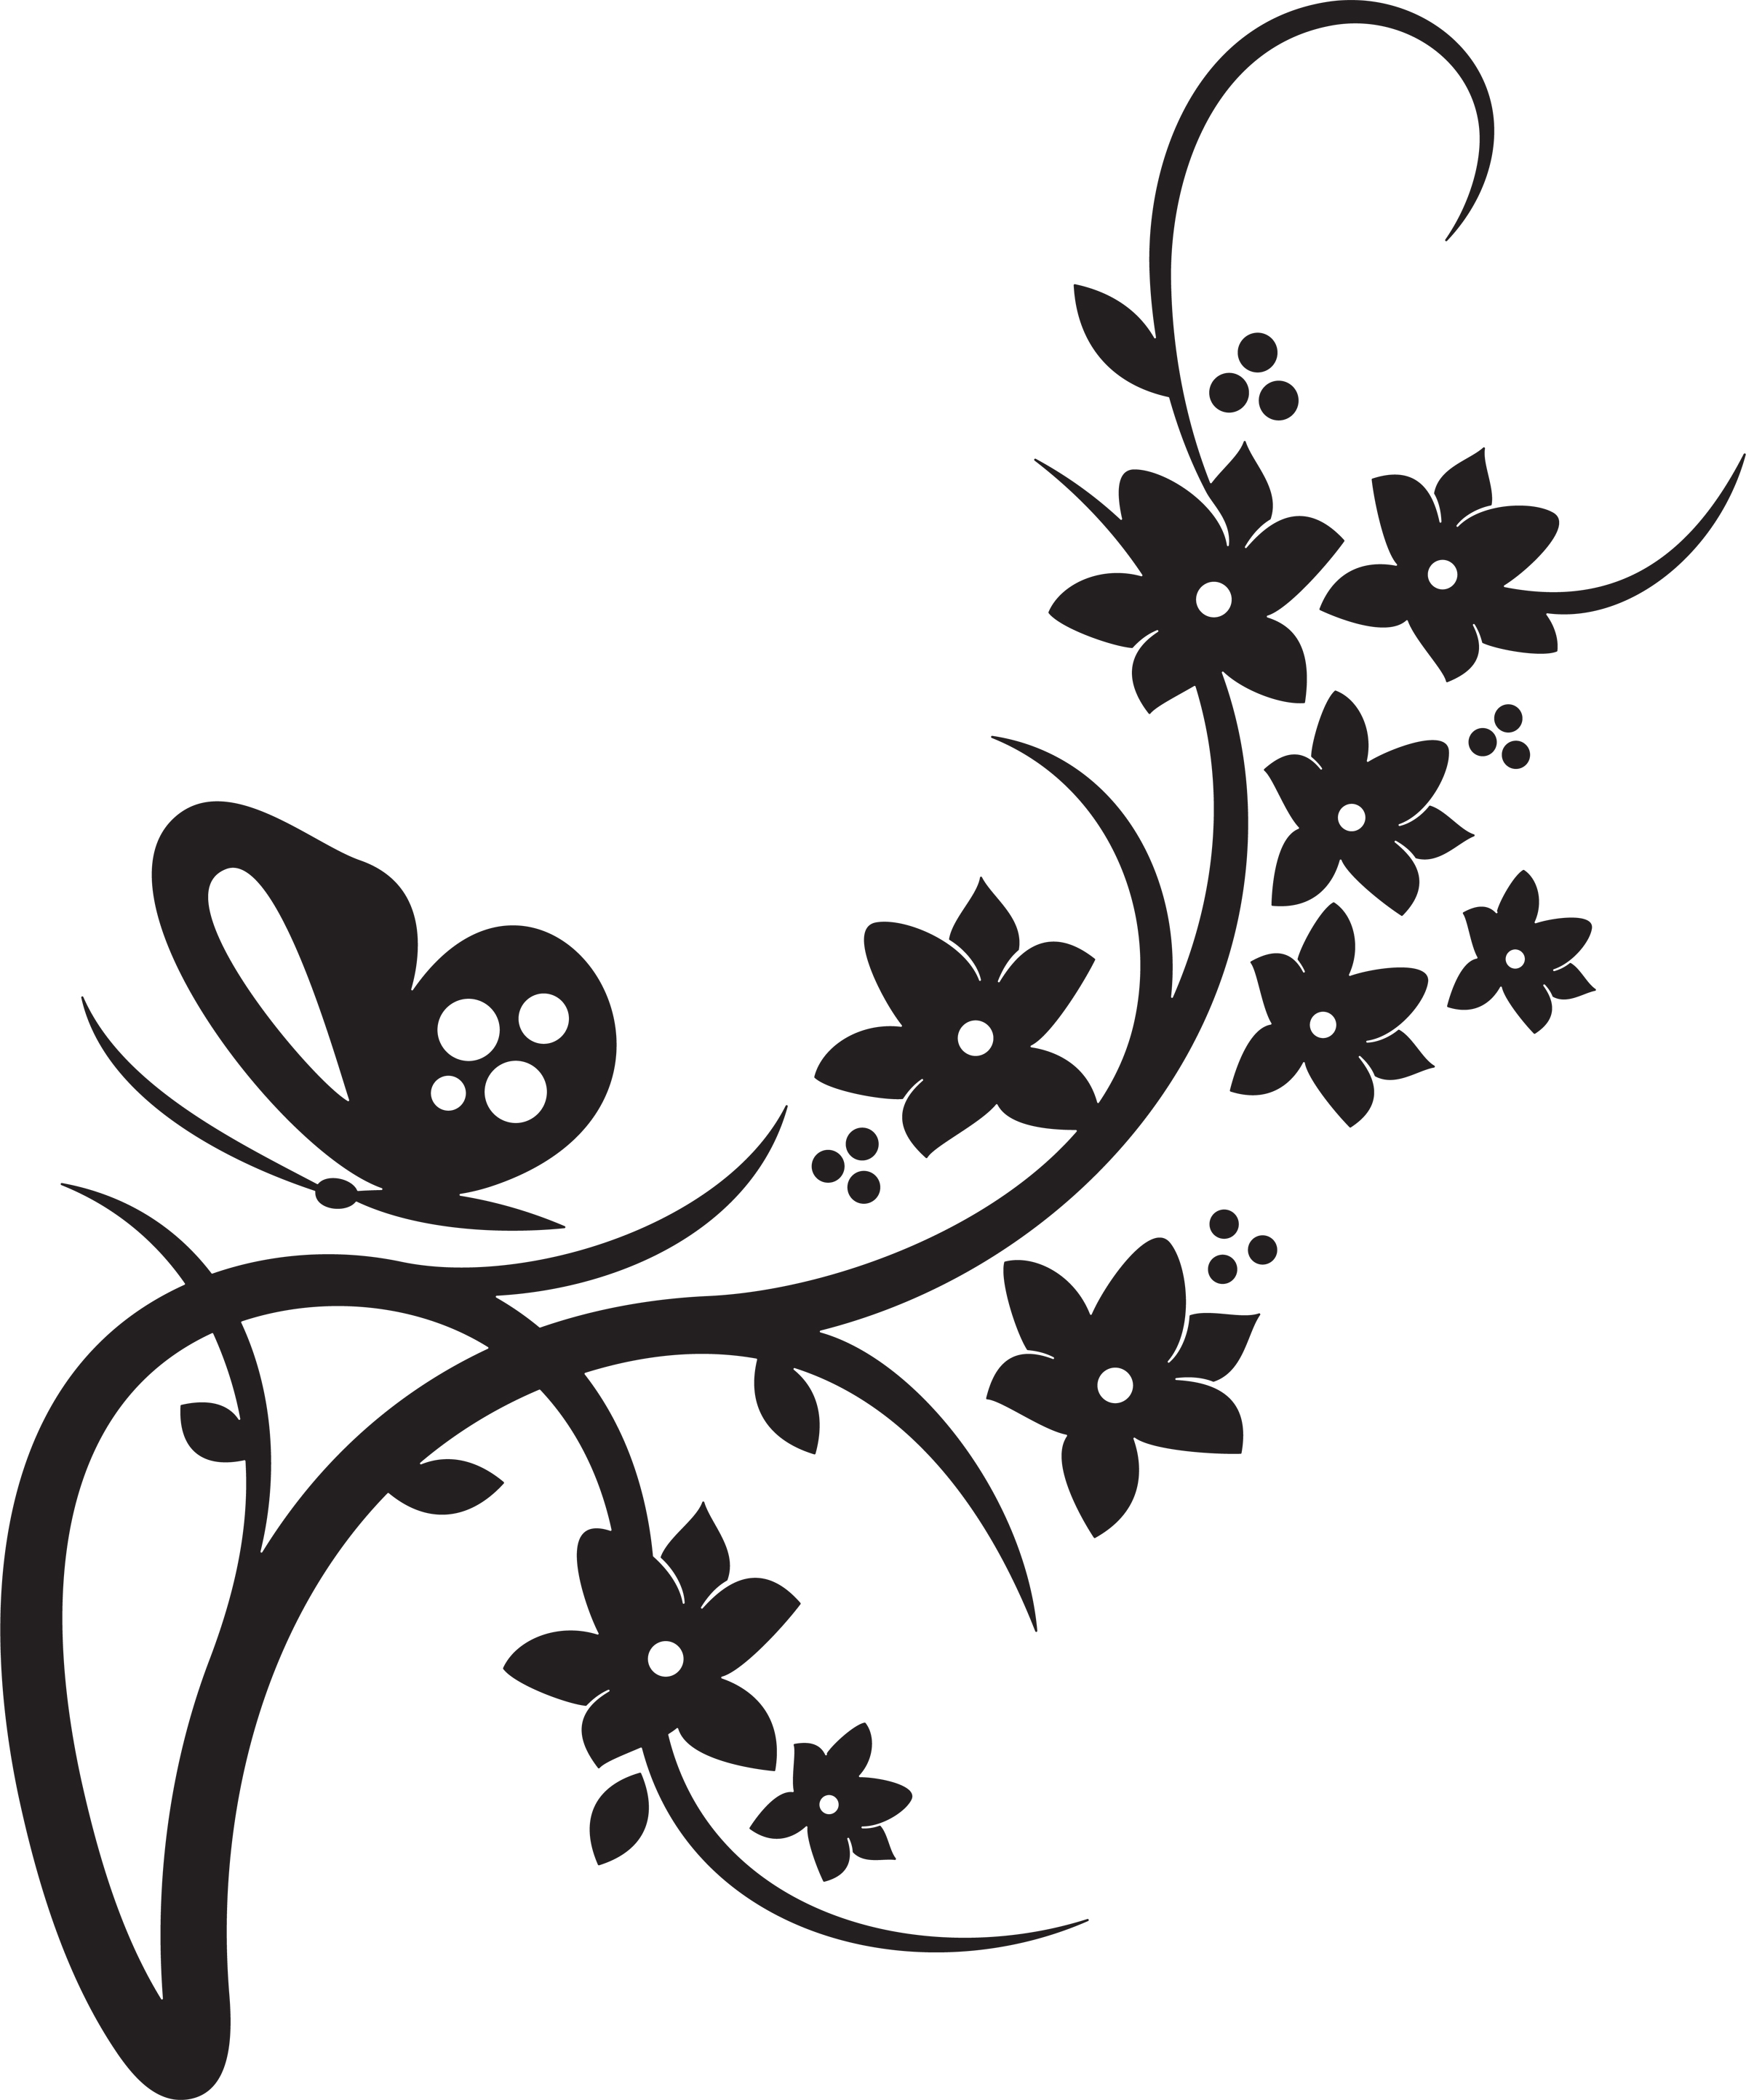 Flower butterflies clipart black and white border